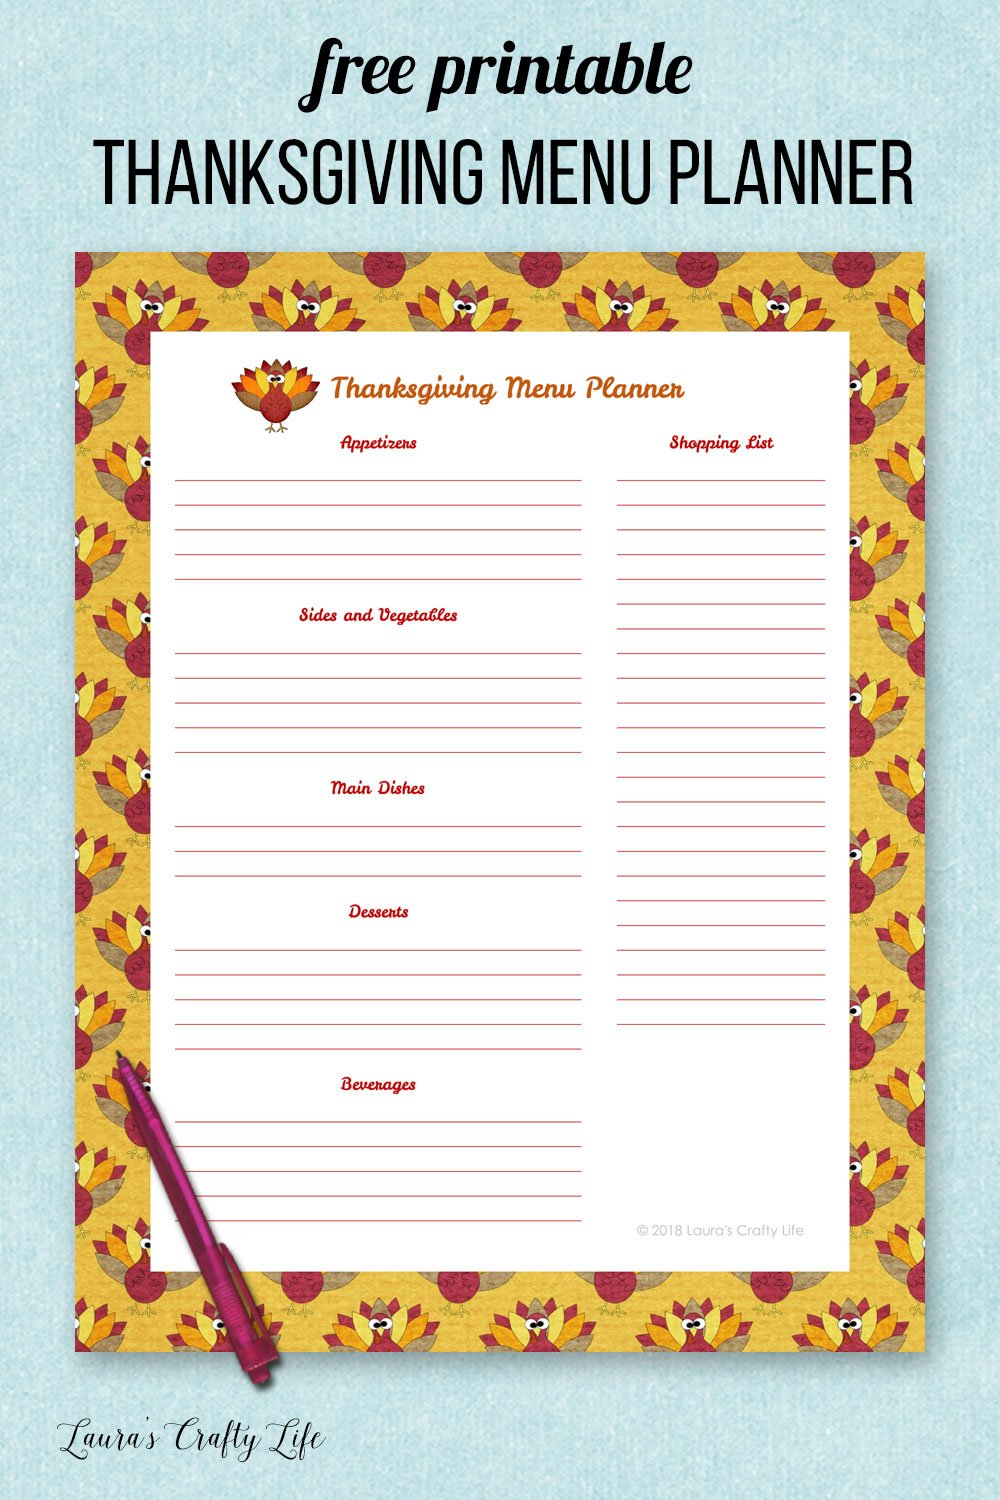 Free printable Thanksgiving menu planner. Organize your holiday with a holiday binder. #laurascraftylife #thanksgiving #freeprintable